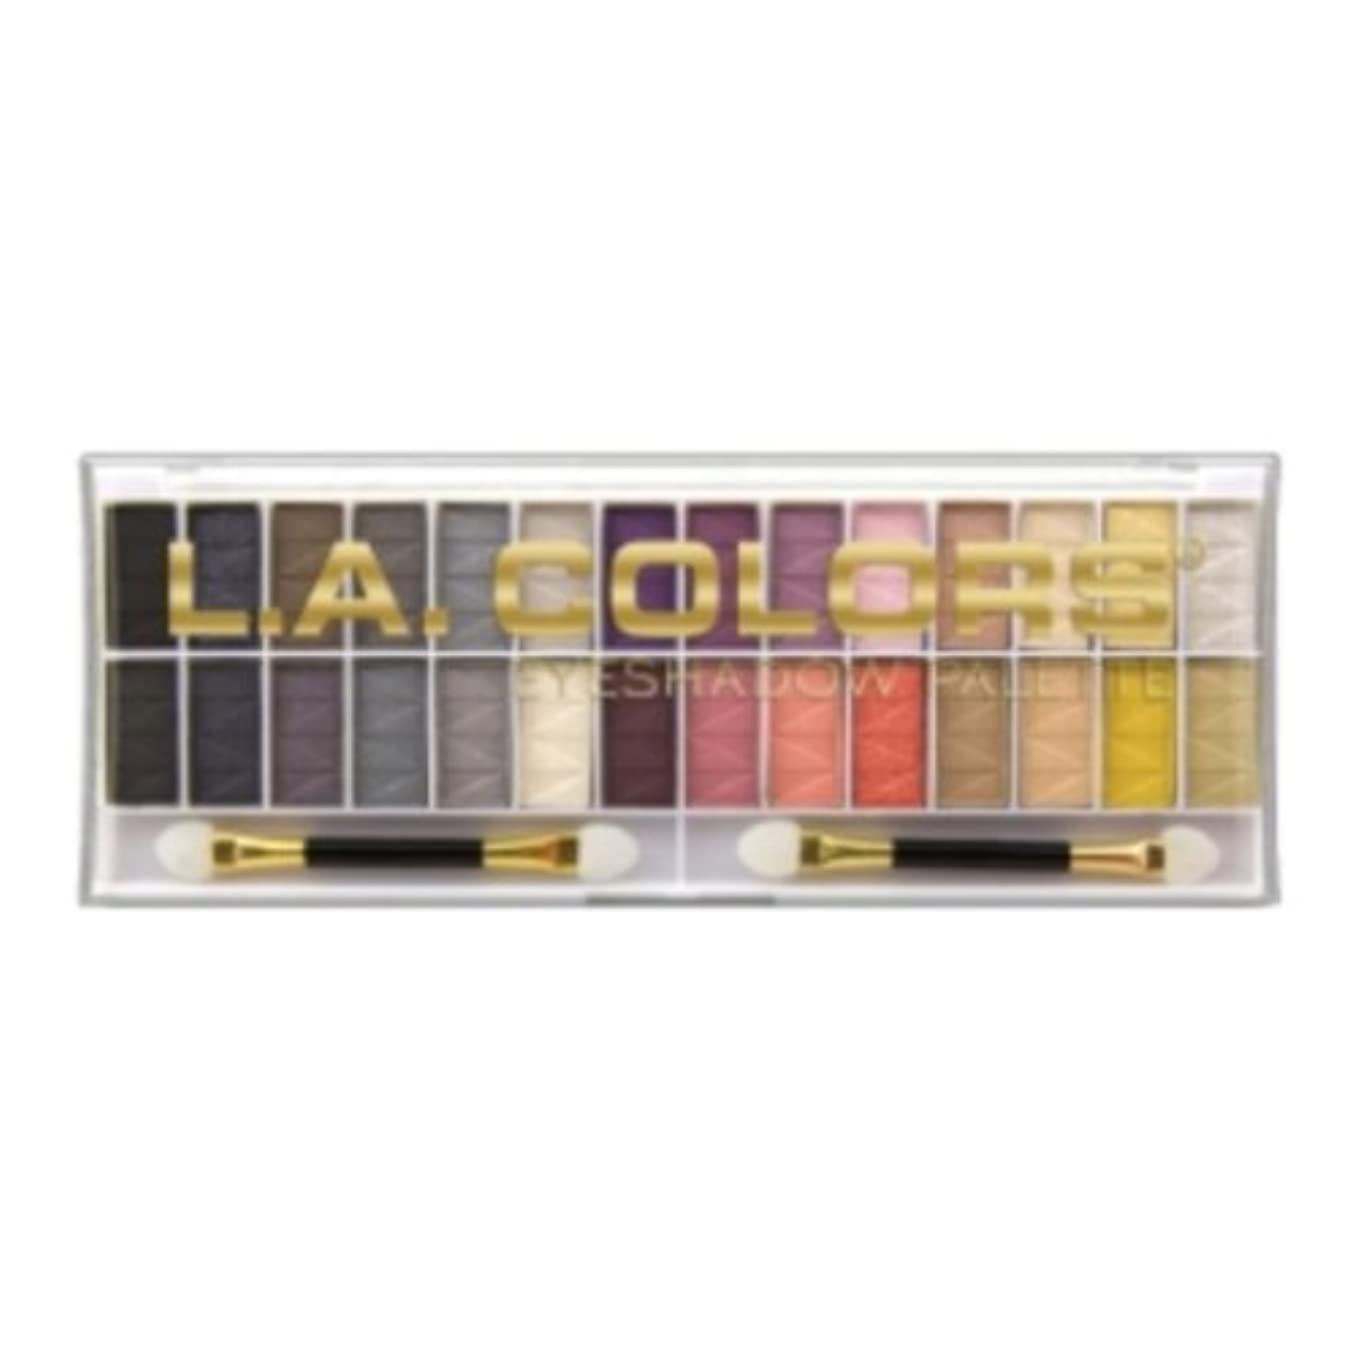 勇者値下げ最近L.A. COLORS 28 Color Eyeshadow Palette - Malibu (並行輸入品)